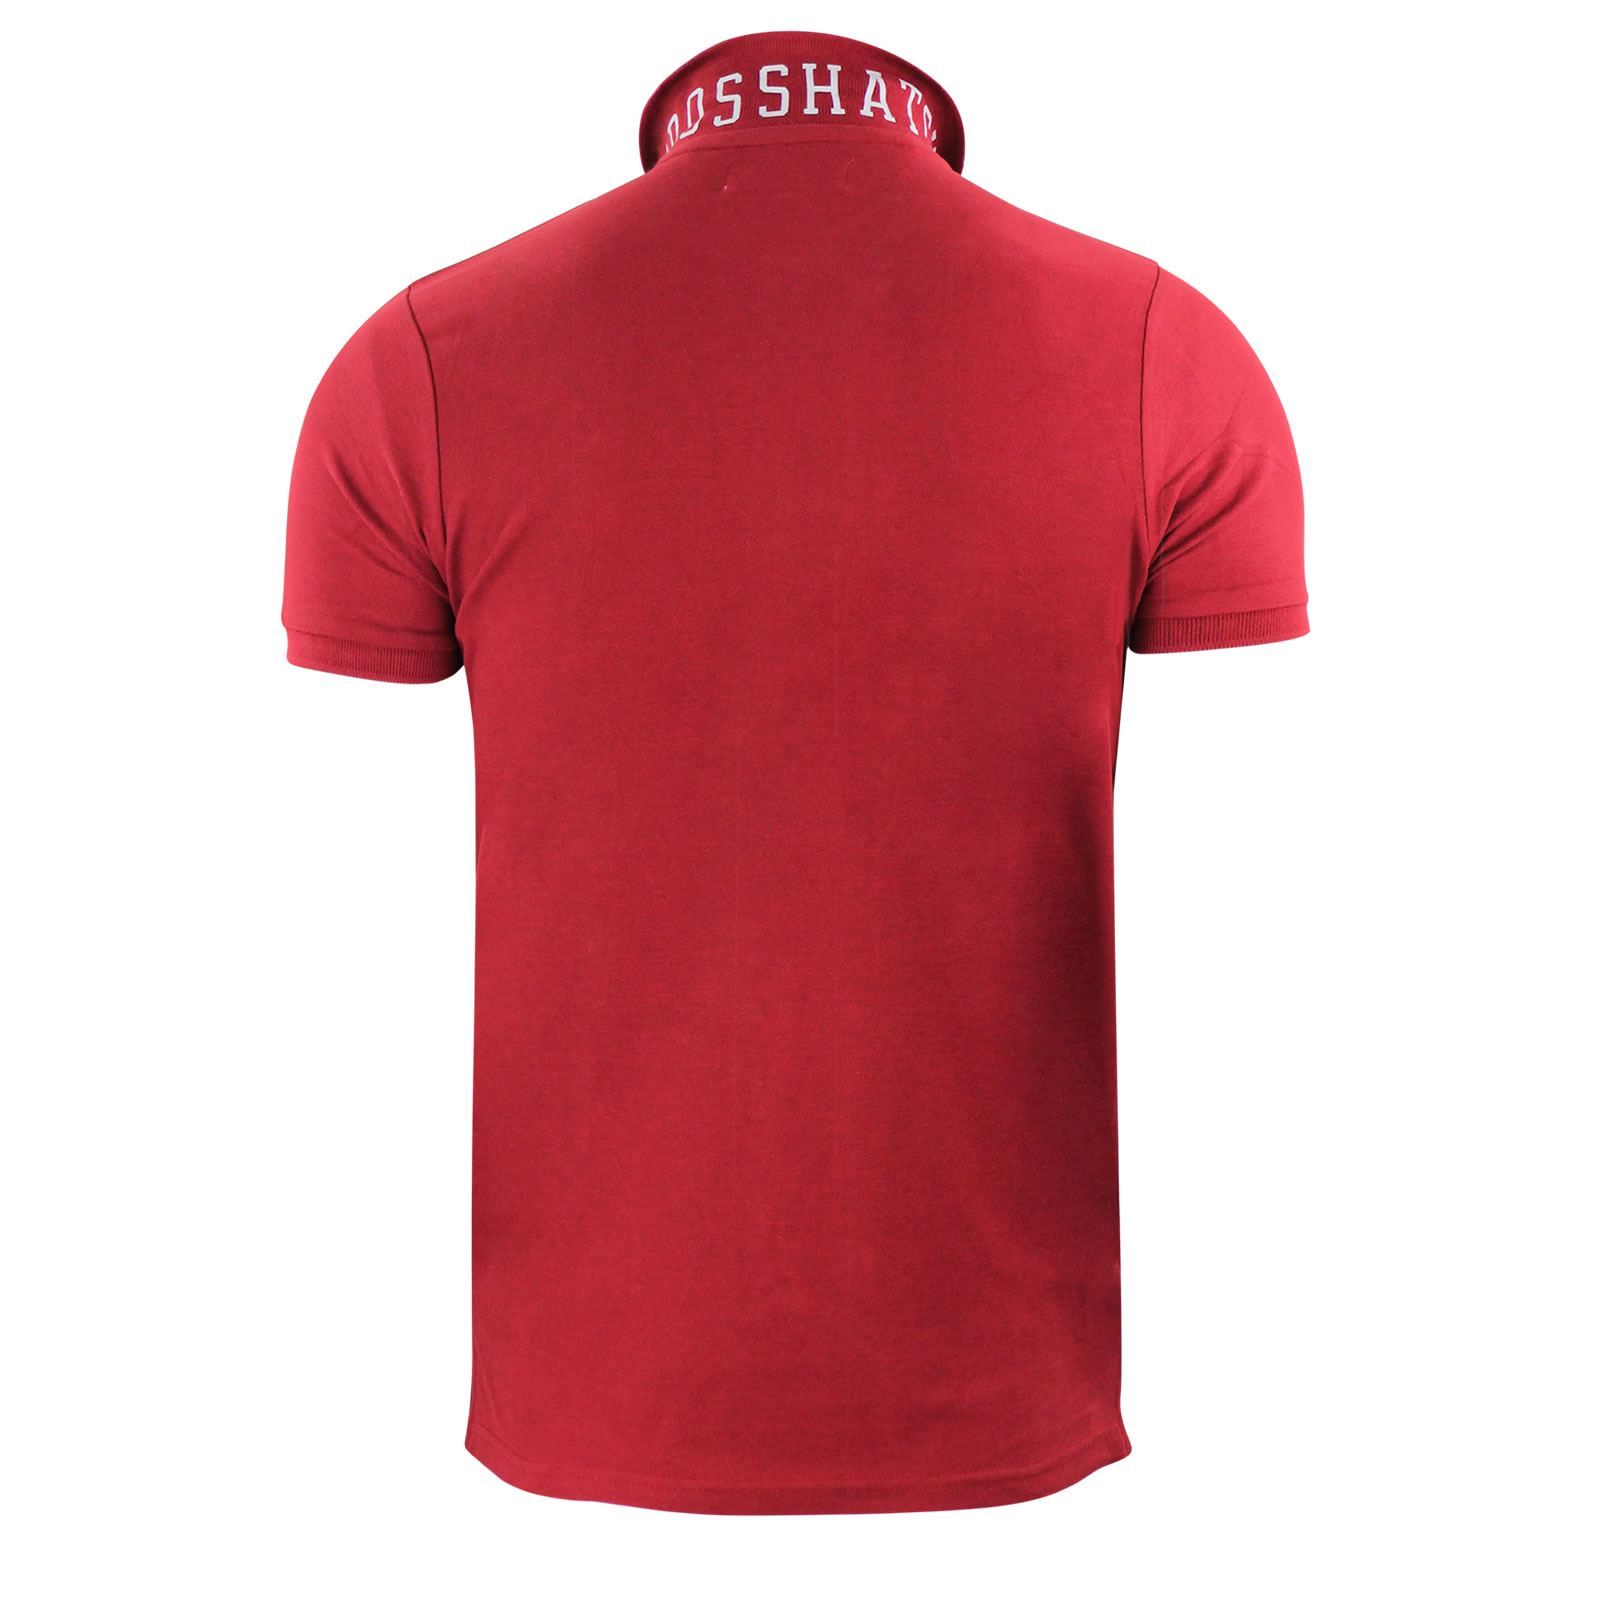 Crosshatch-Mens-Polo-T-Shirt-Pique-Polo-Cotton-Collared-Short-Sleeve-T-Shirt thumbnail 33